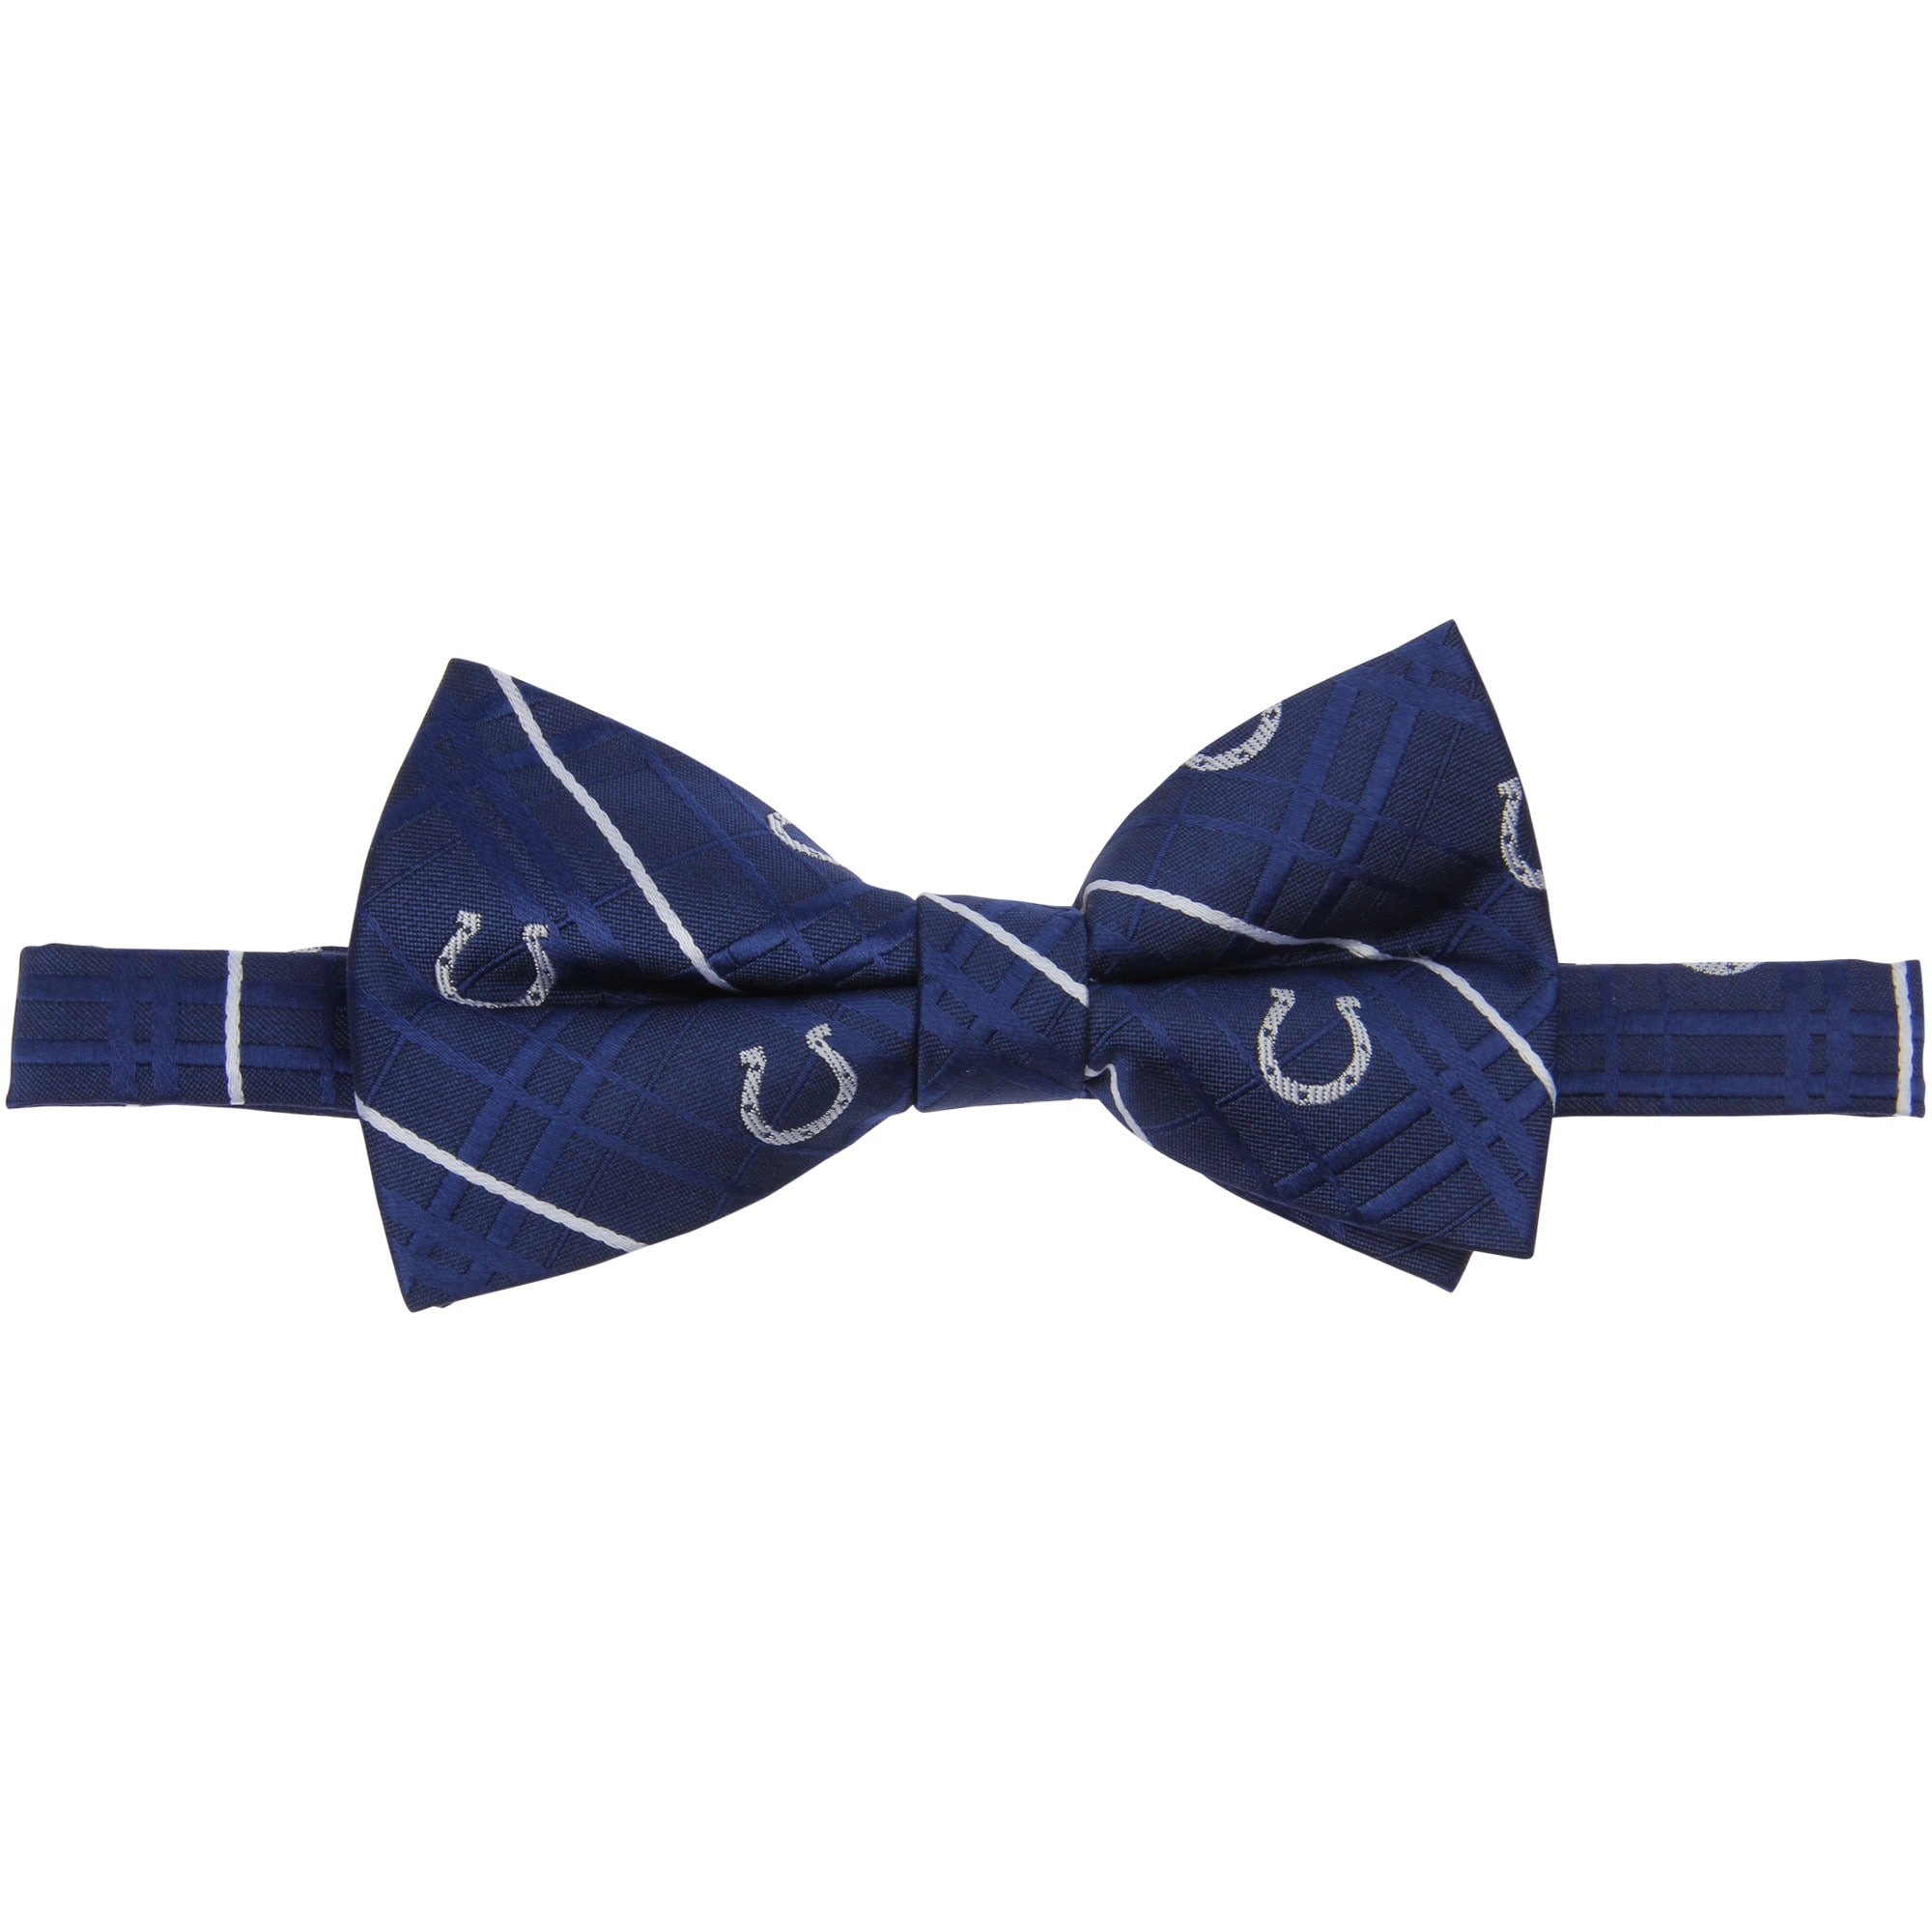 Indianapolis Colts Oxford Bow Tie - Royal